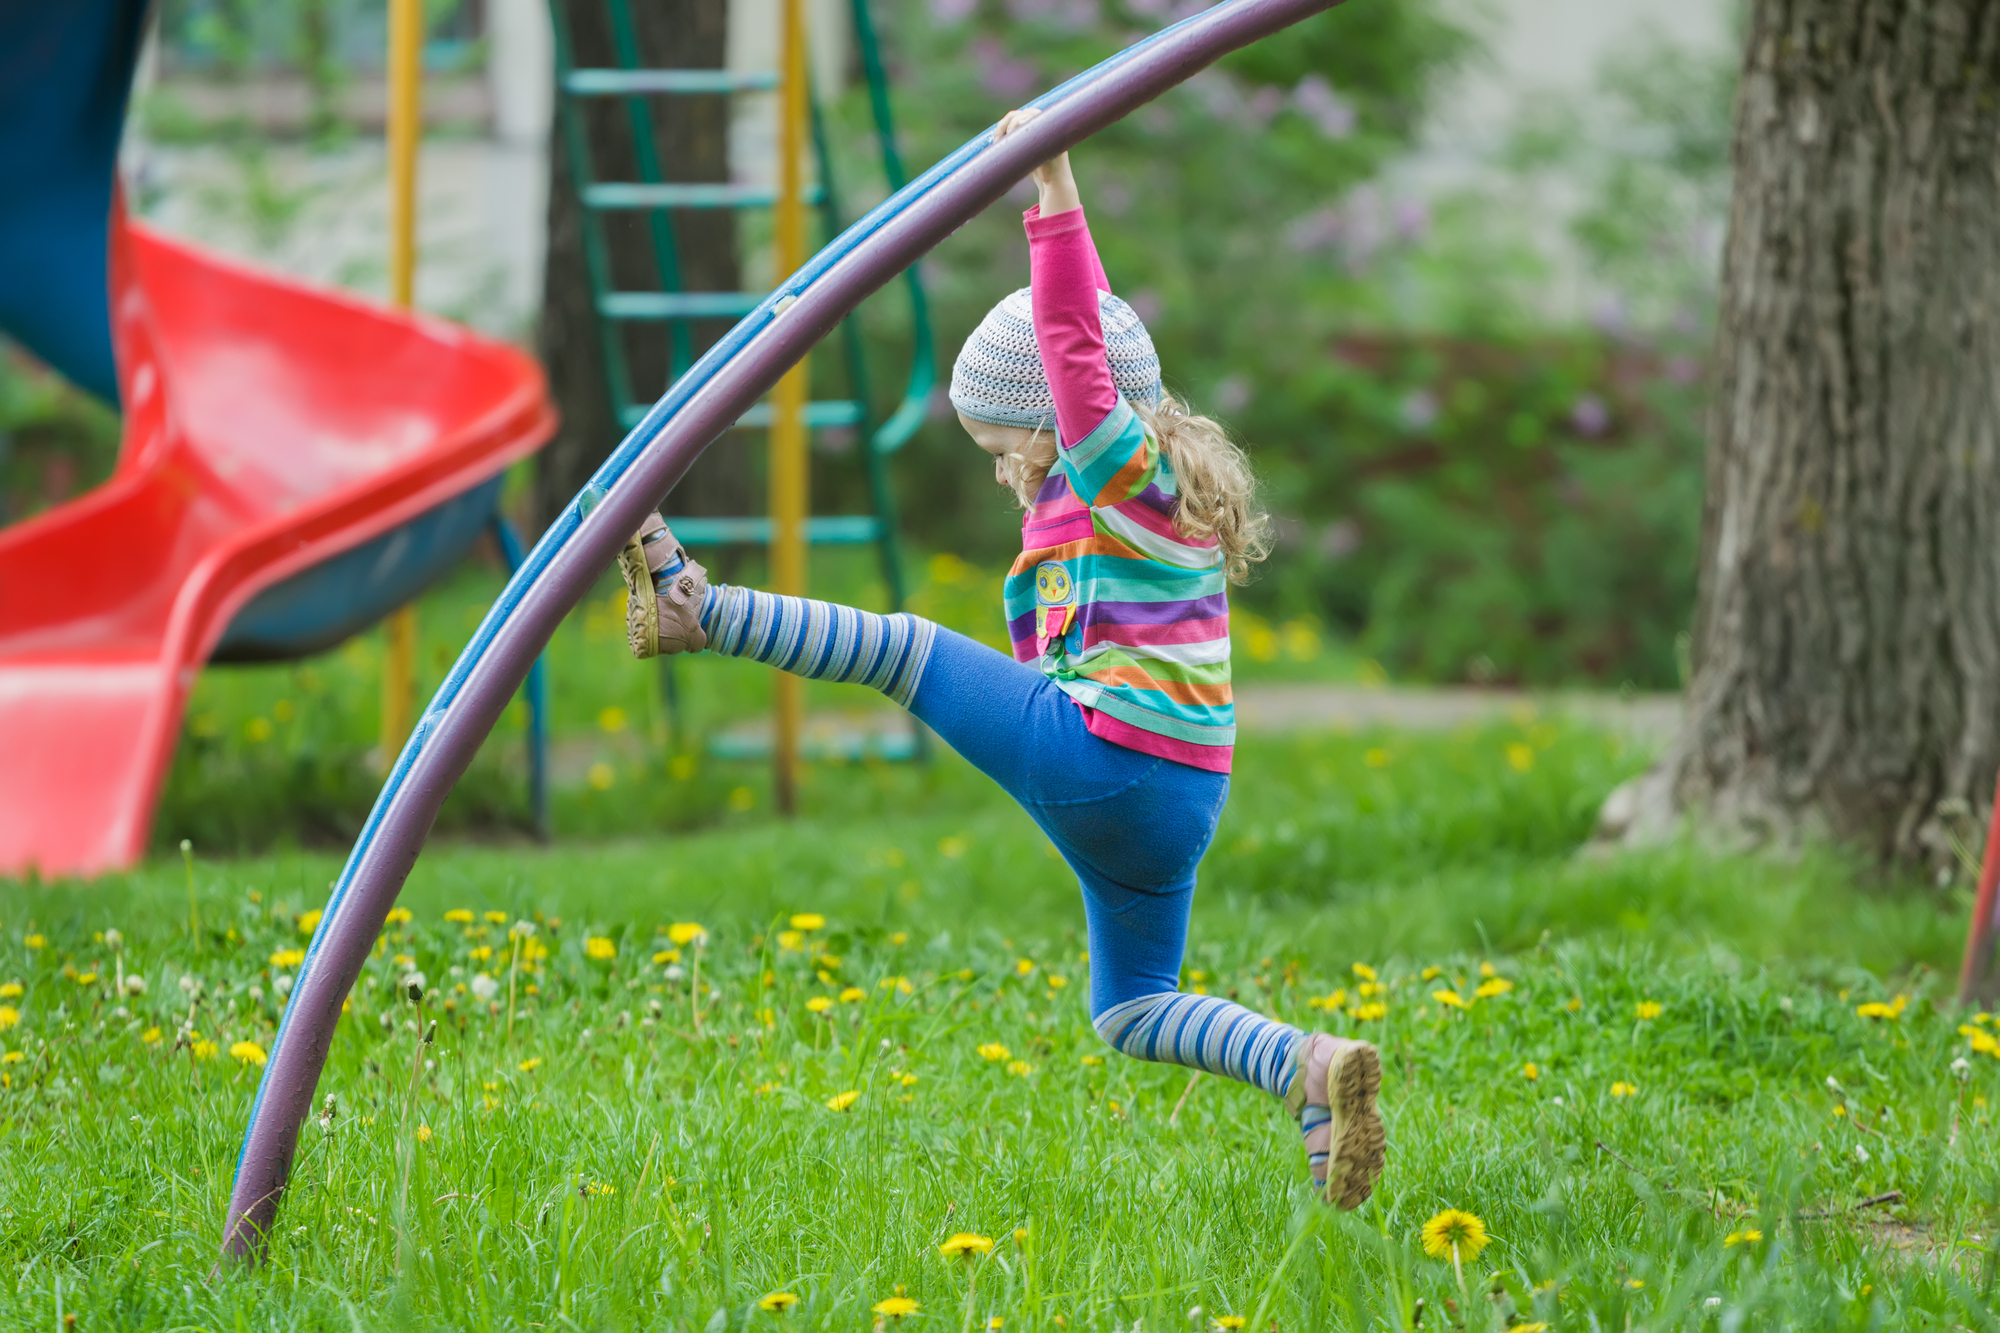 A little girl in a rainbow sweatshirt climbs on a jungle gym on a spring day